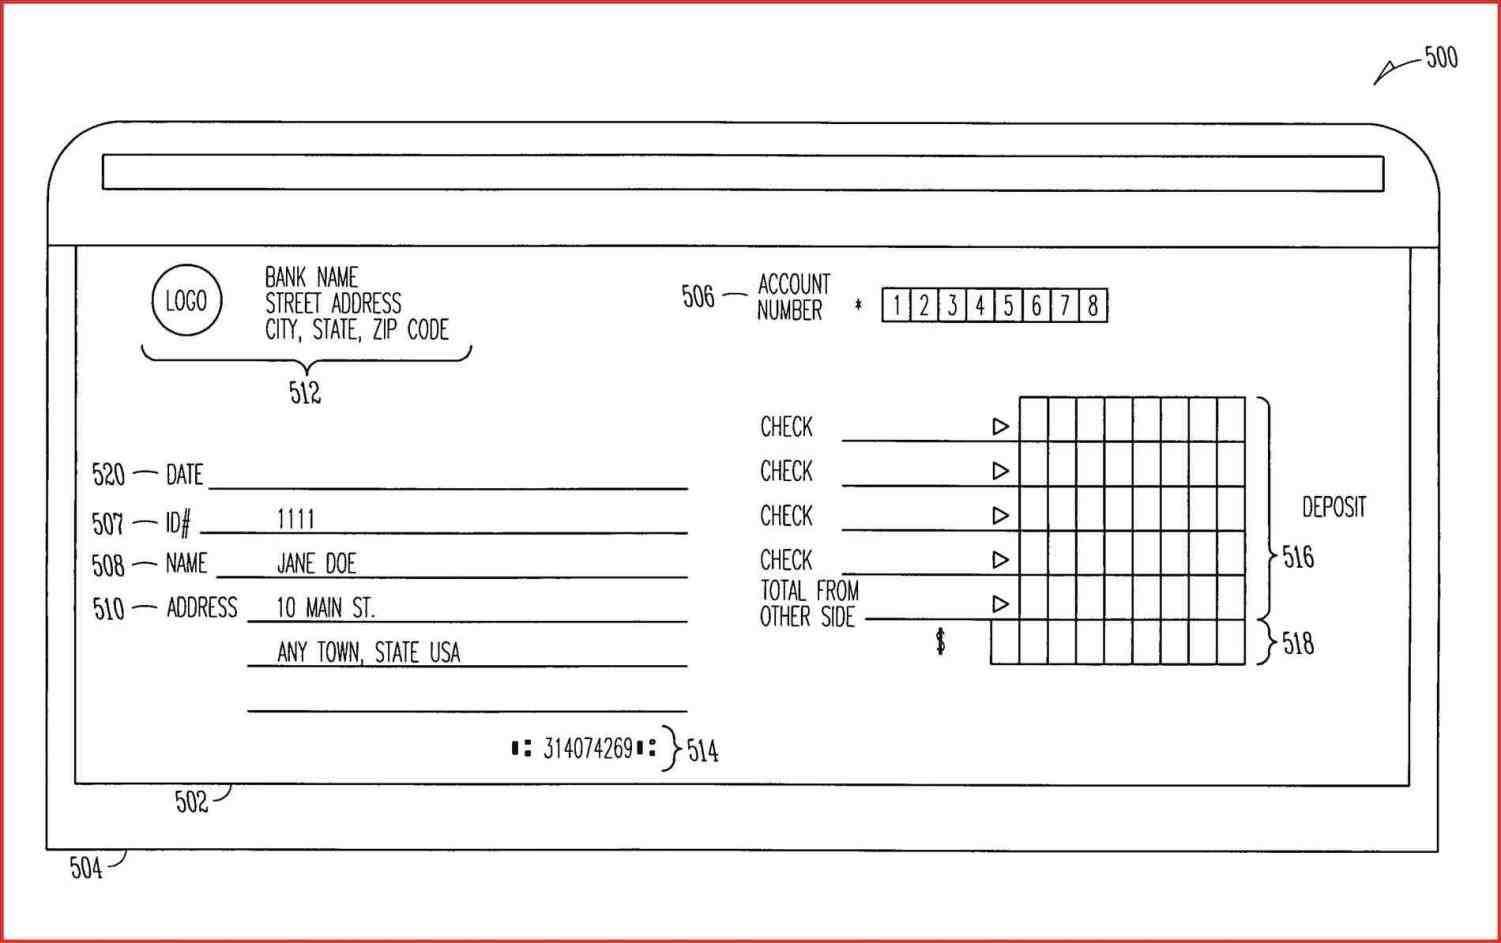 image about Printable Deposit Slips named Cost-free Printable Deposit Slips Template - Templates #NzkyNjE